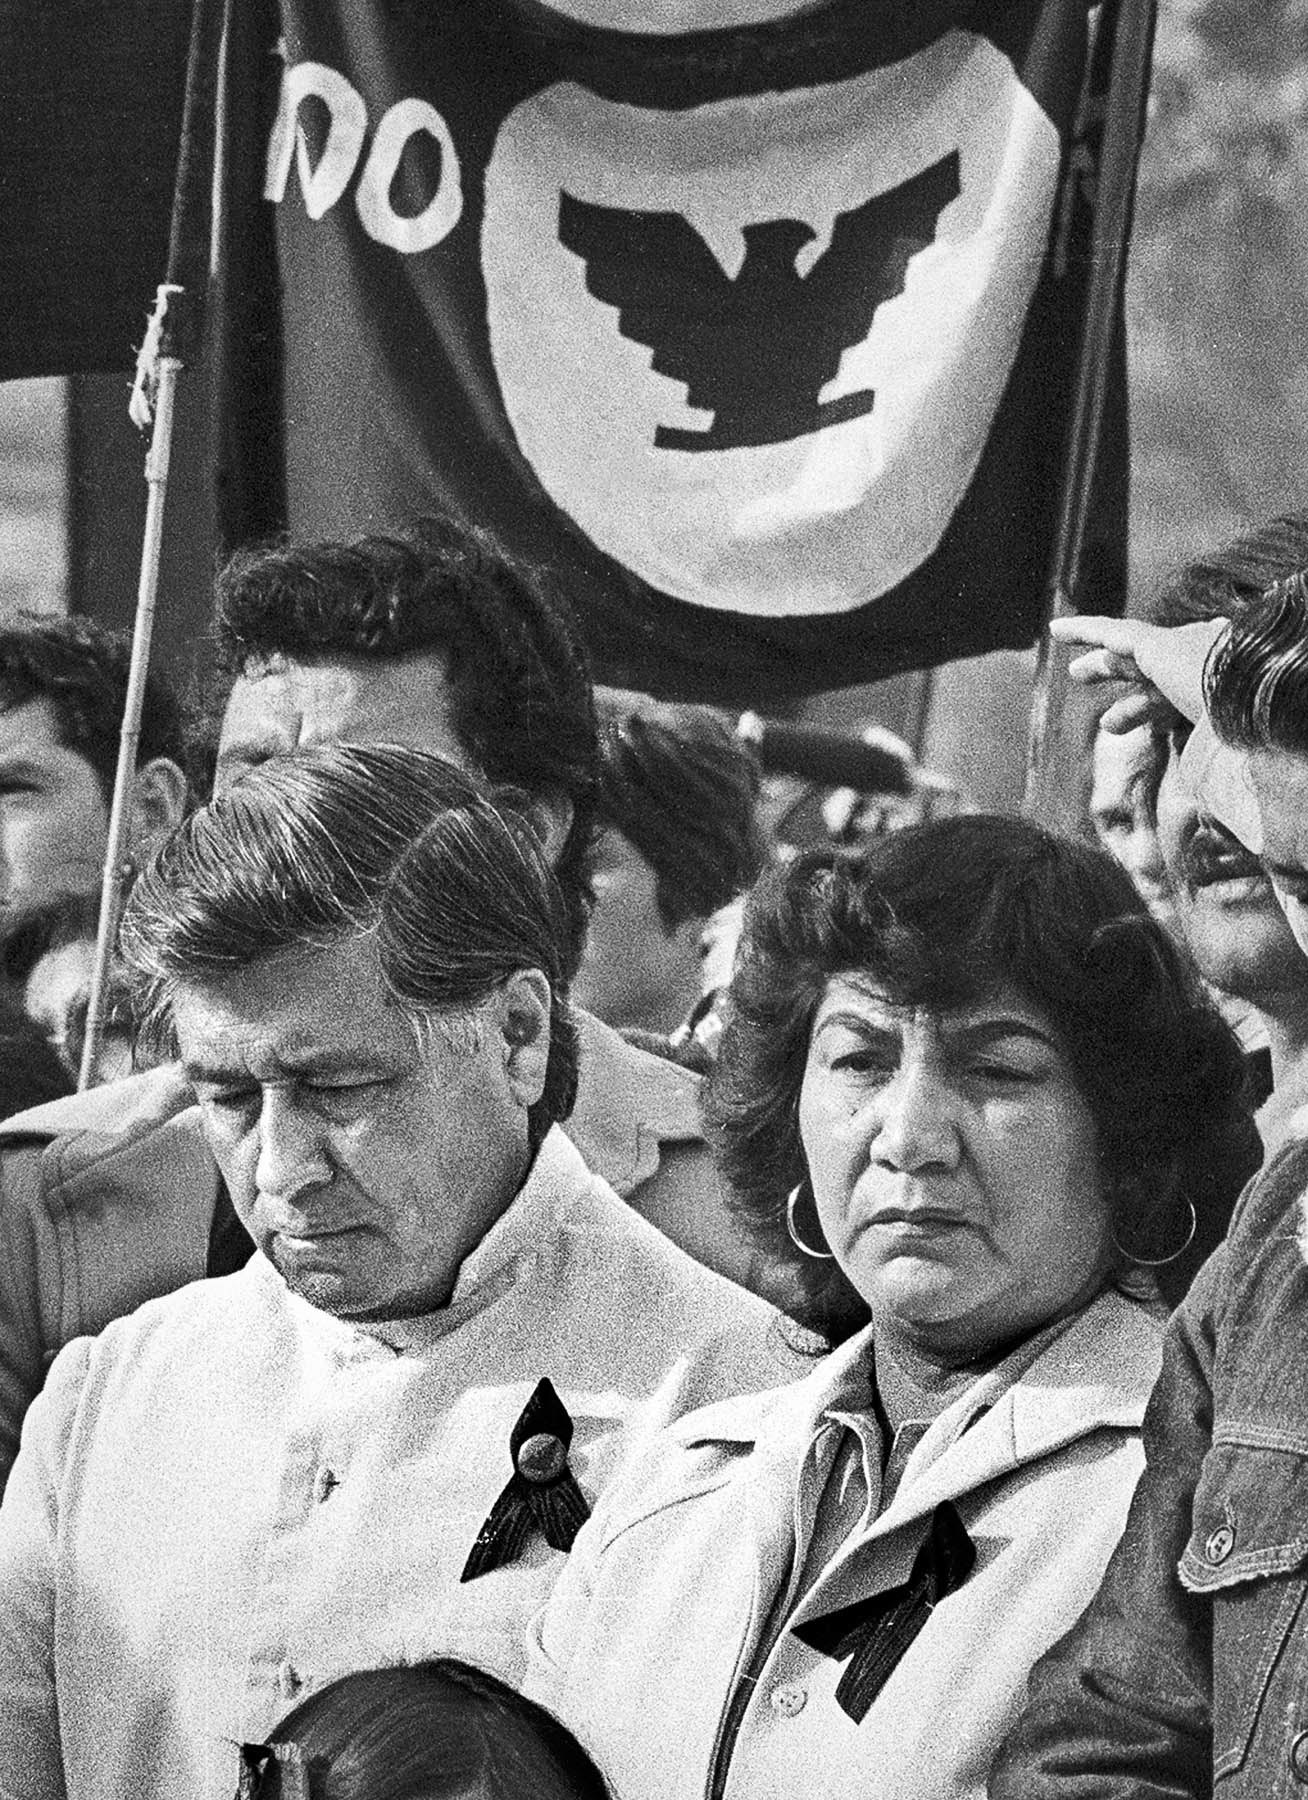 From the Archives: Remembering Cesar Chavez - Los Angeles Times